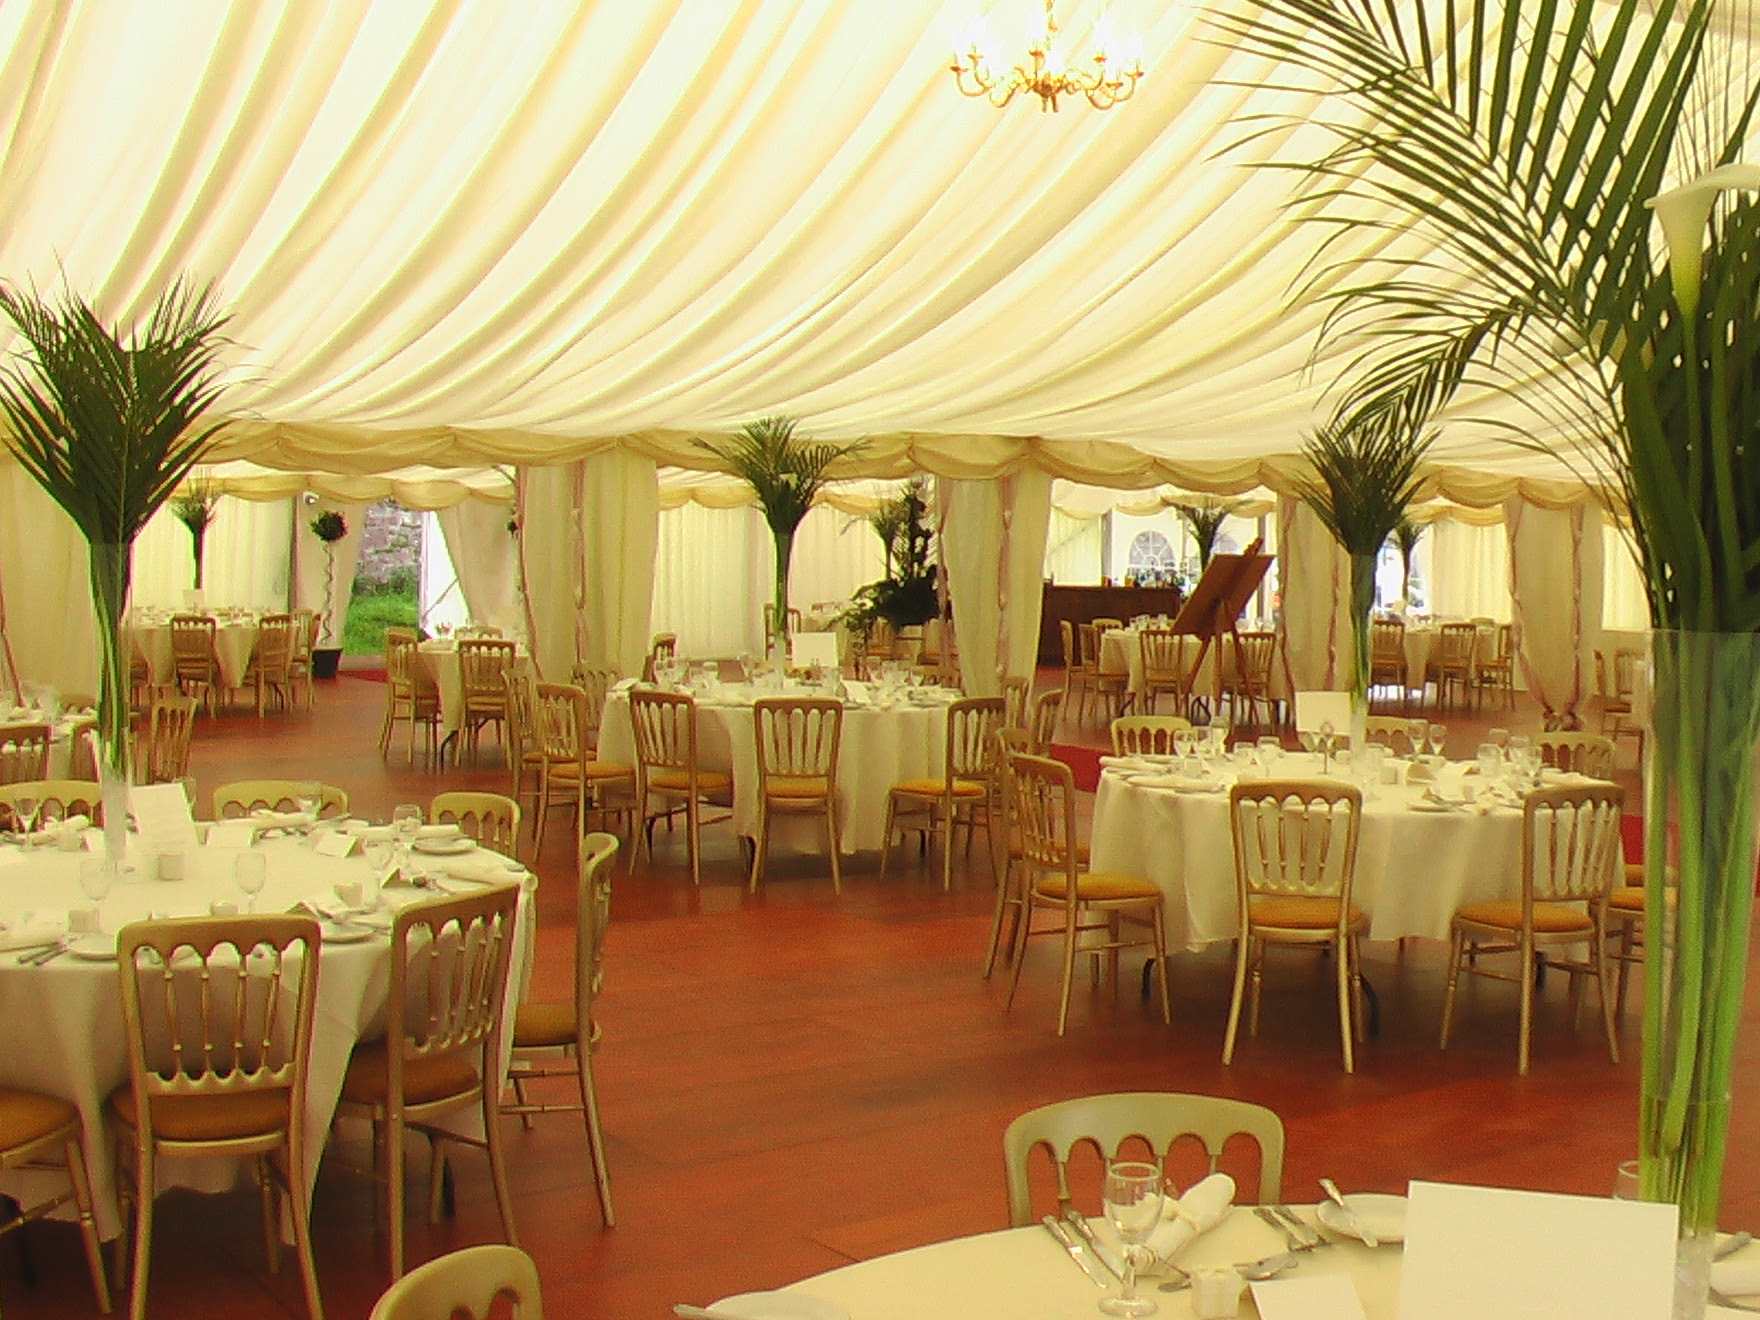 Wedding Marquee Decoration Gallery Wedding Decoration Ideas